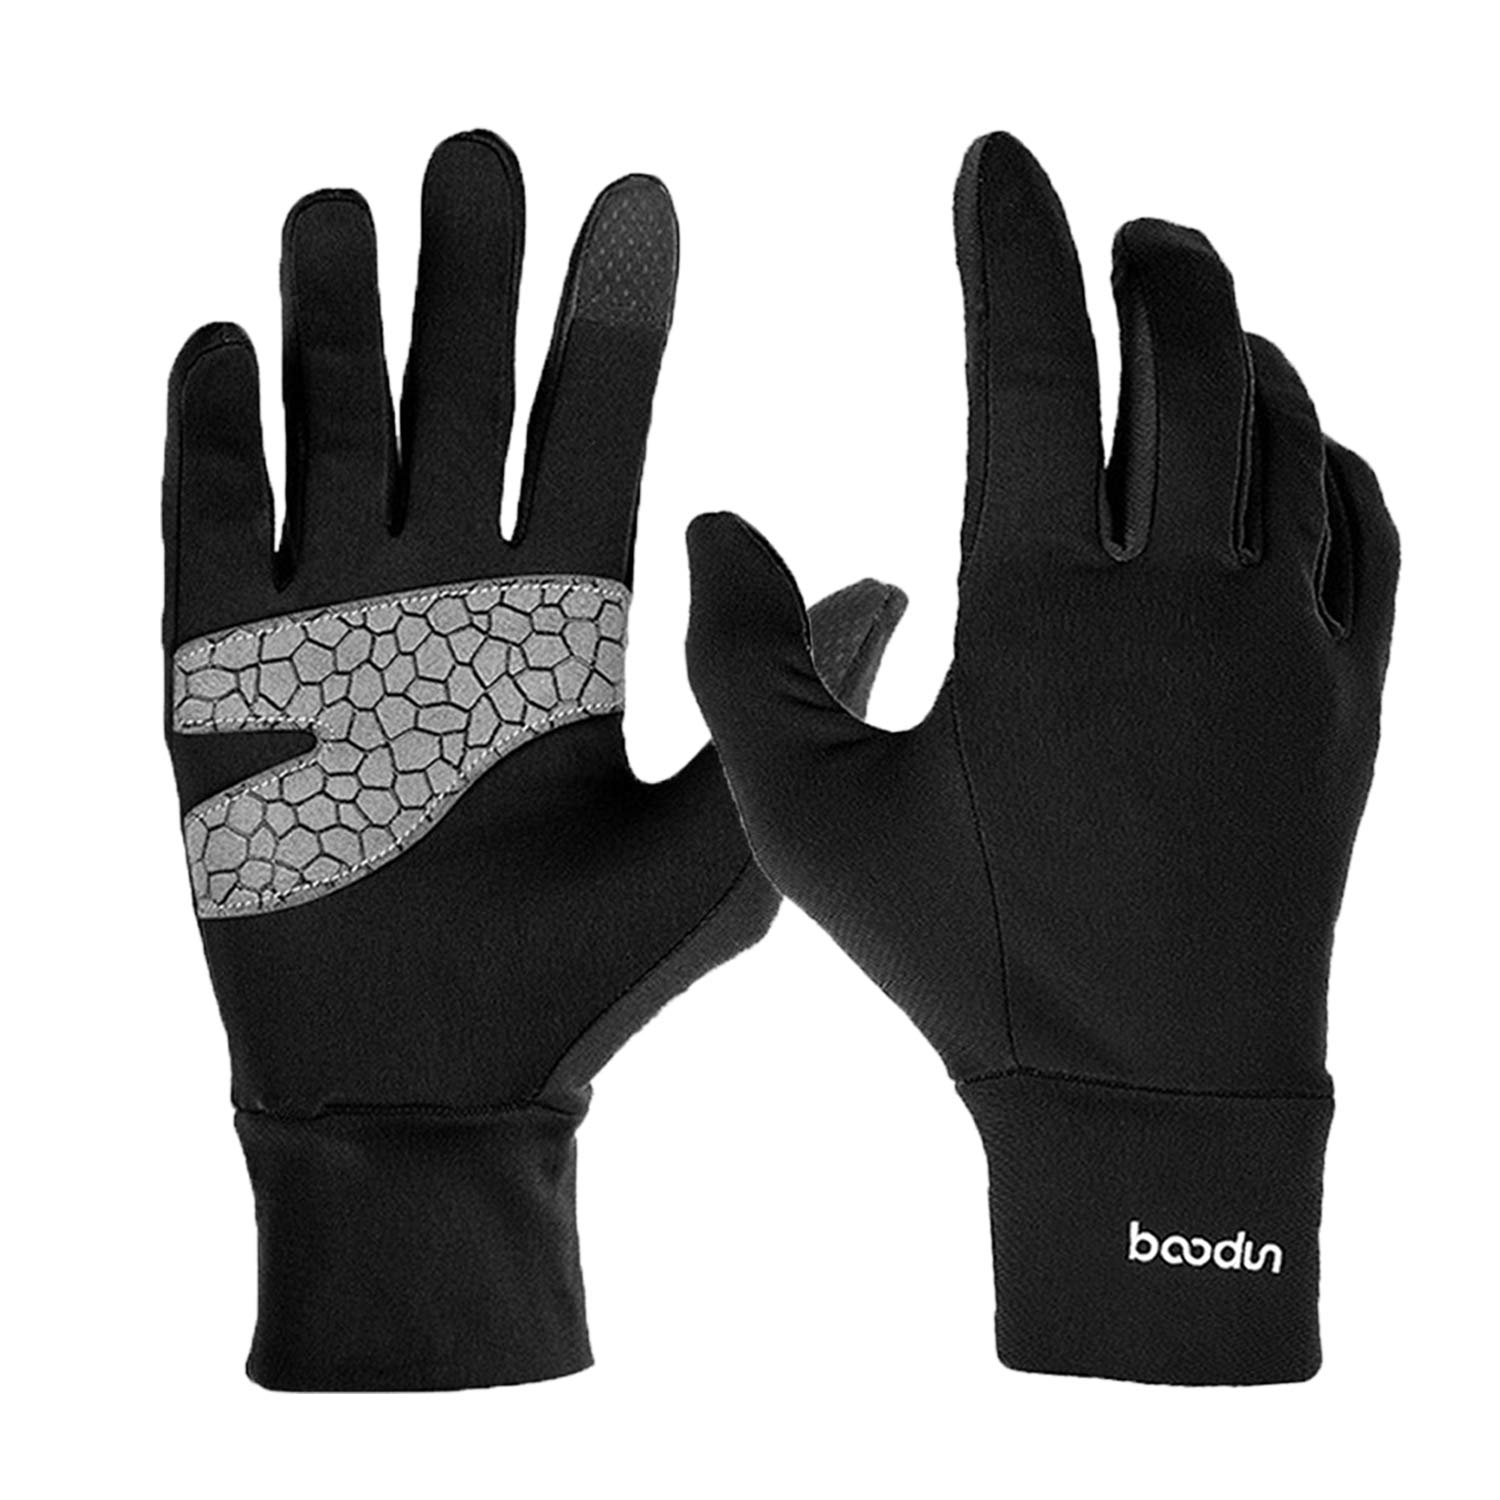 Aproo Winter Touch Screen Gloves, Unisex Cold Weather Thermal Warm WindprooGloves Non-Slip for Outdoor Cycling Driving Climbing Hiking Running Men Women (Large/X-Large)